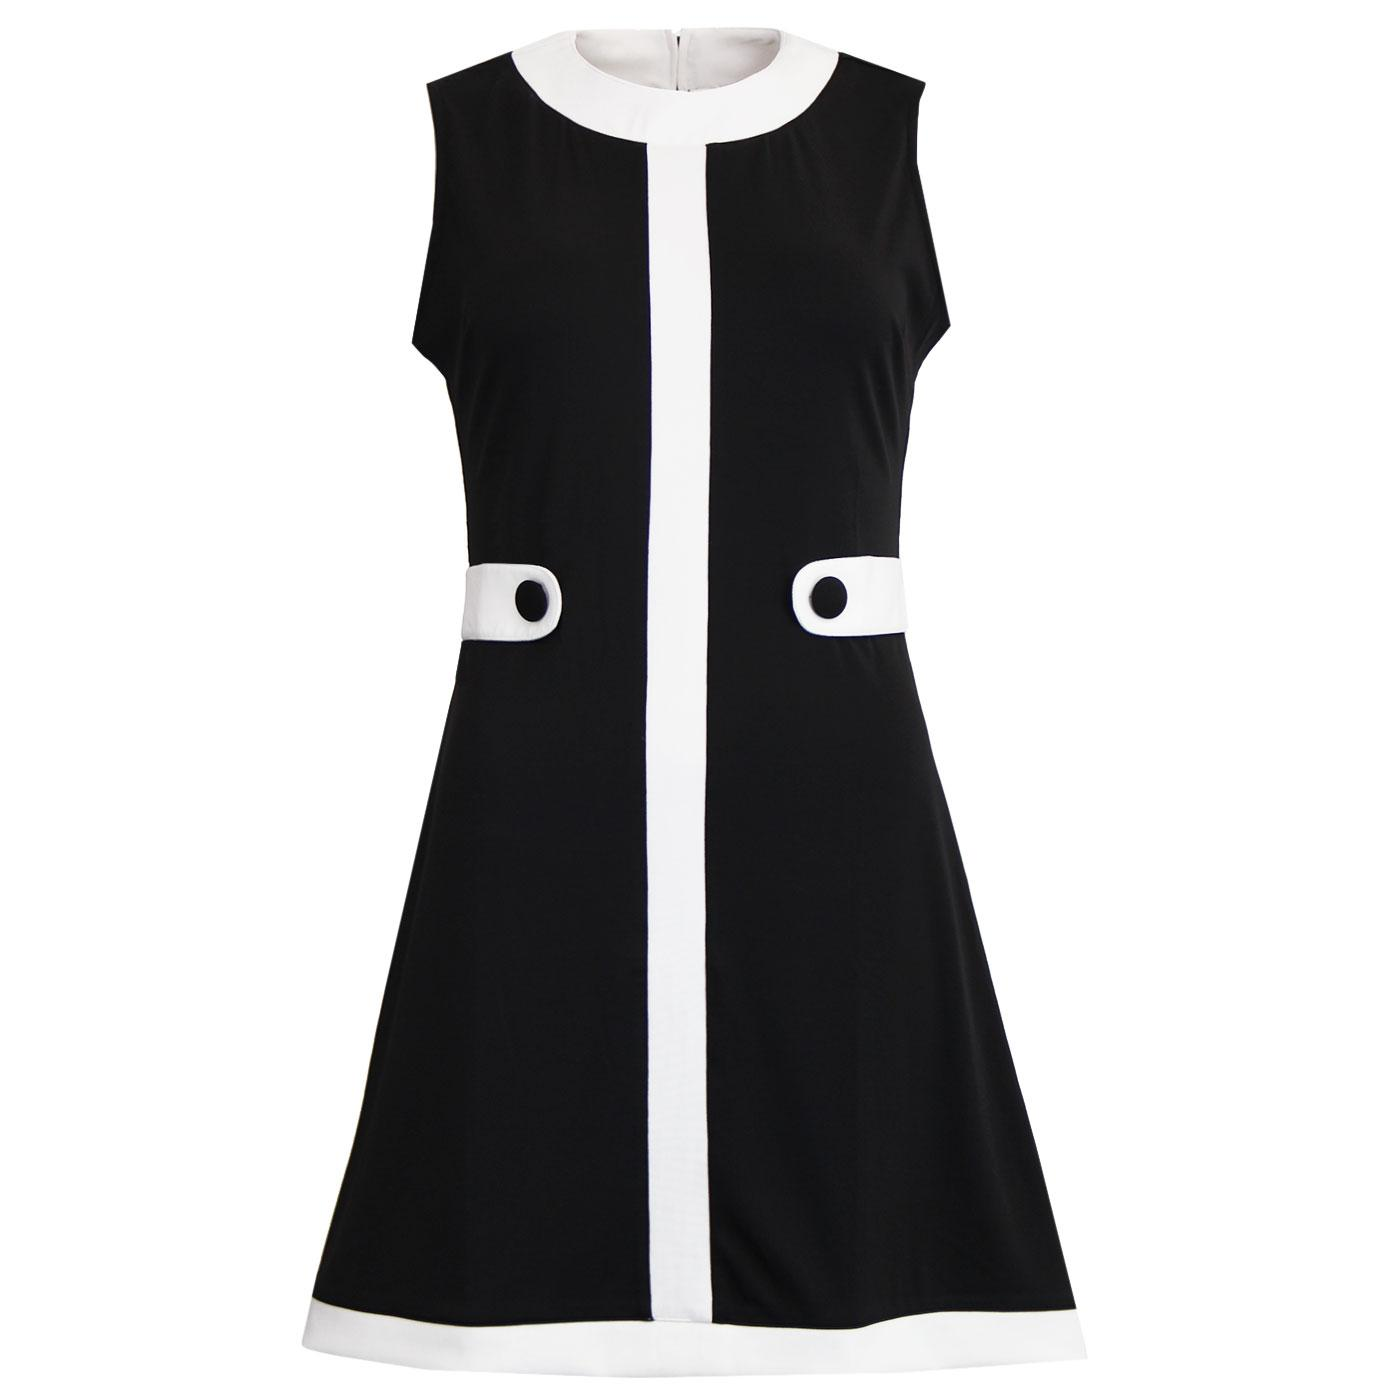 À Go-go MADCAP ENGLAND 60s Mod Centre Stripe Dress